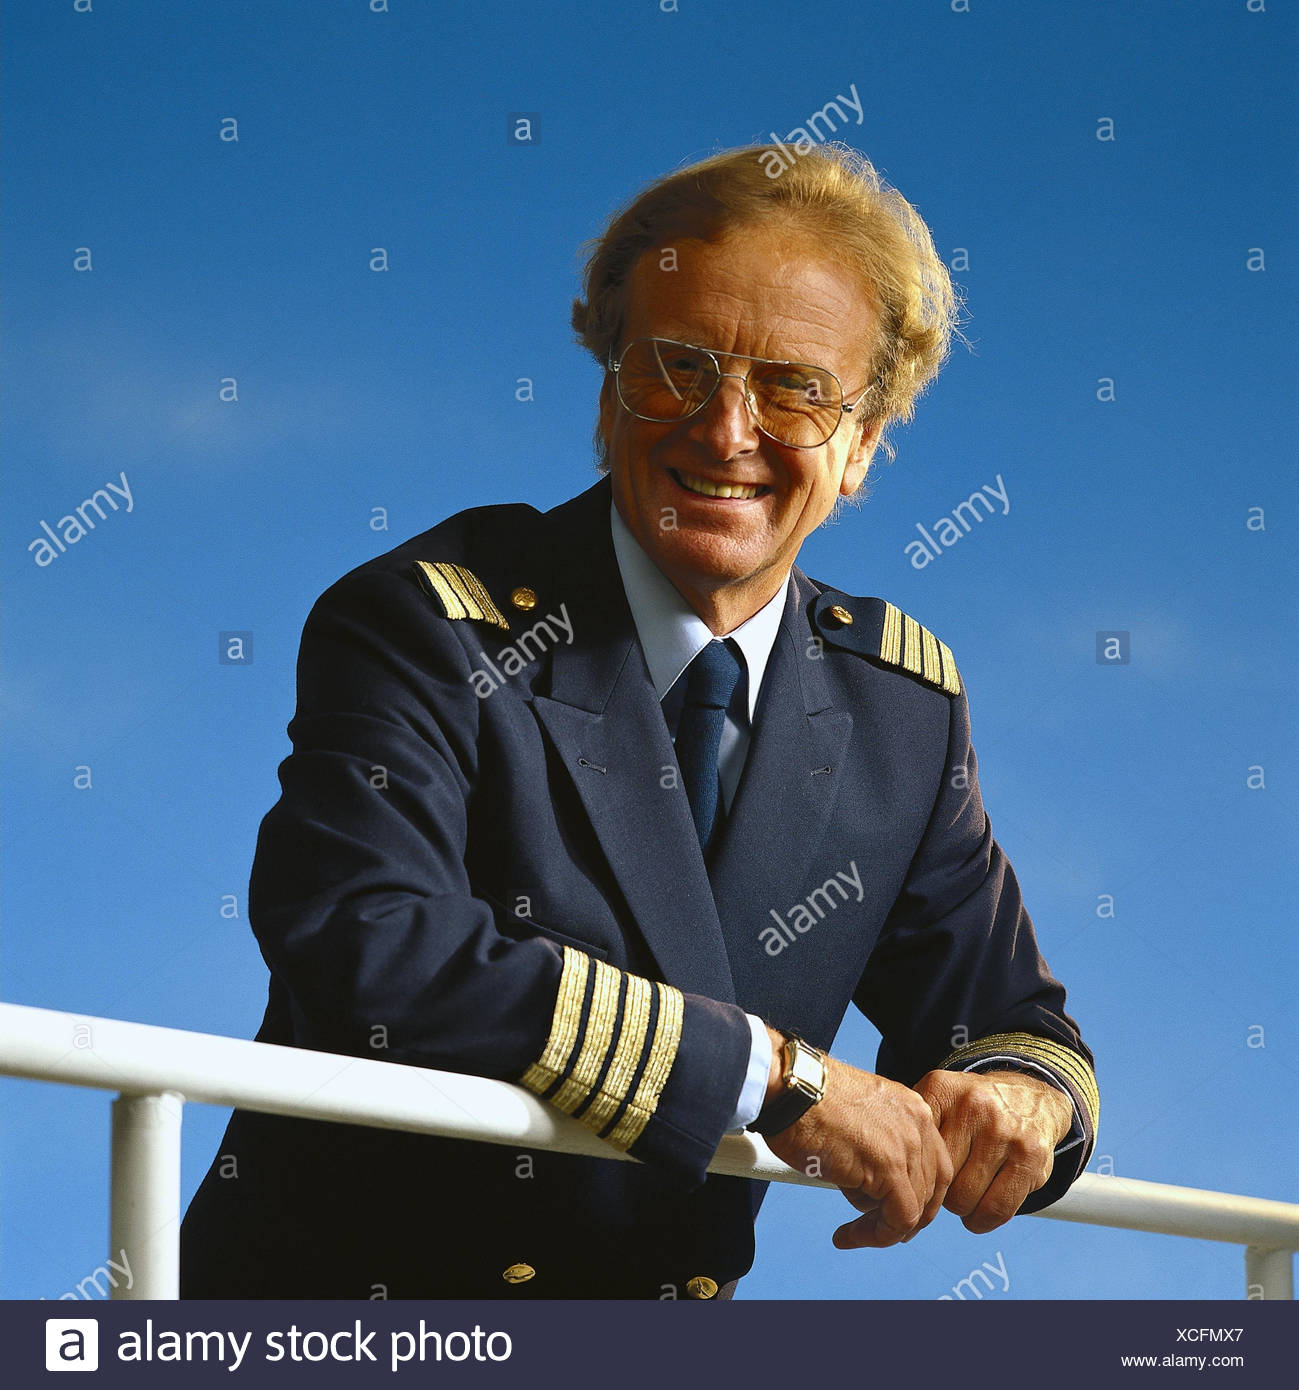 Ship, detail, rail, captain, outside, sea captain, navy, officer, naval officer, naval officer, occupation, navigation, man, uniform, glasses, smile, half portrait - Stock Image